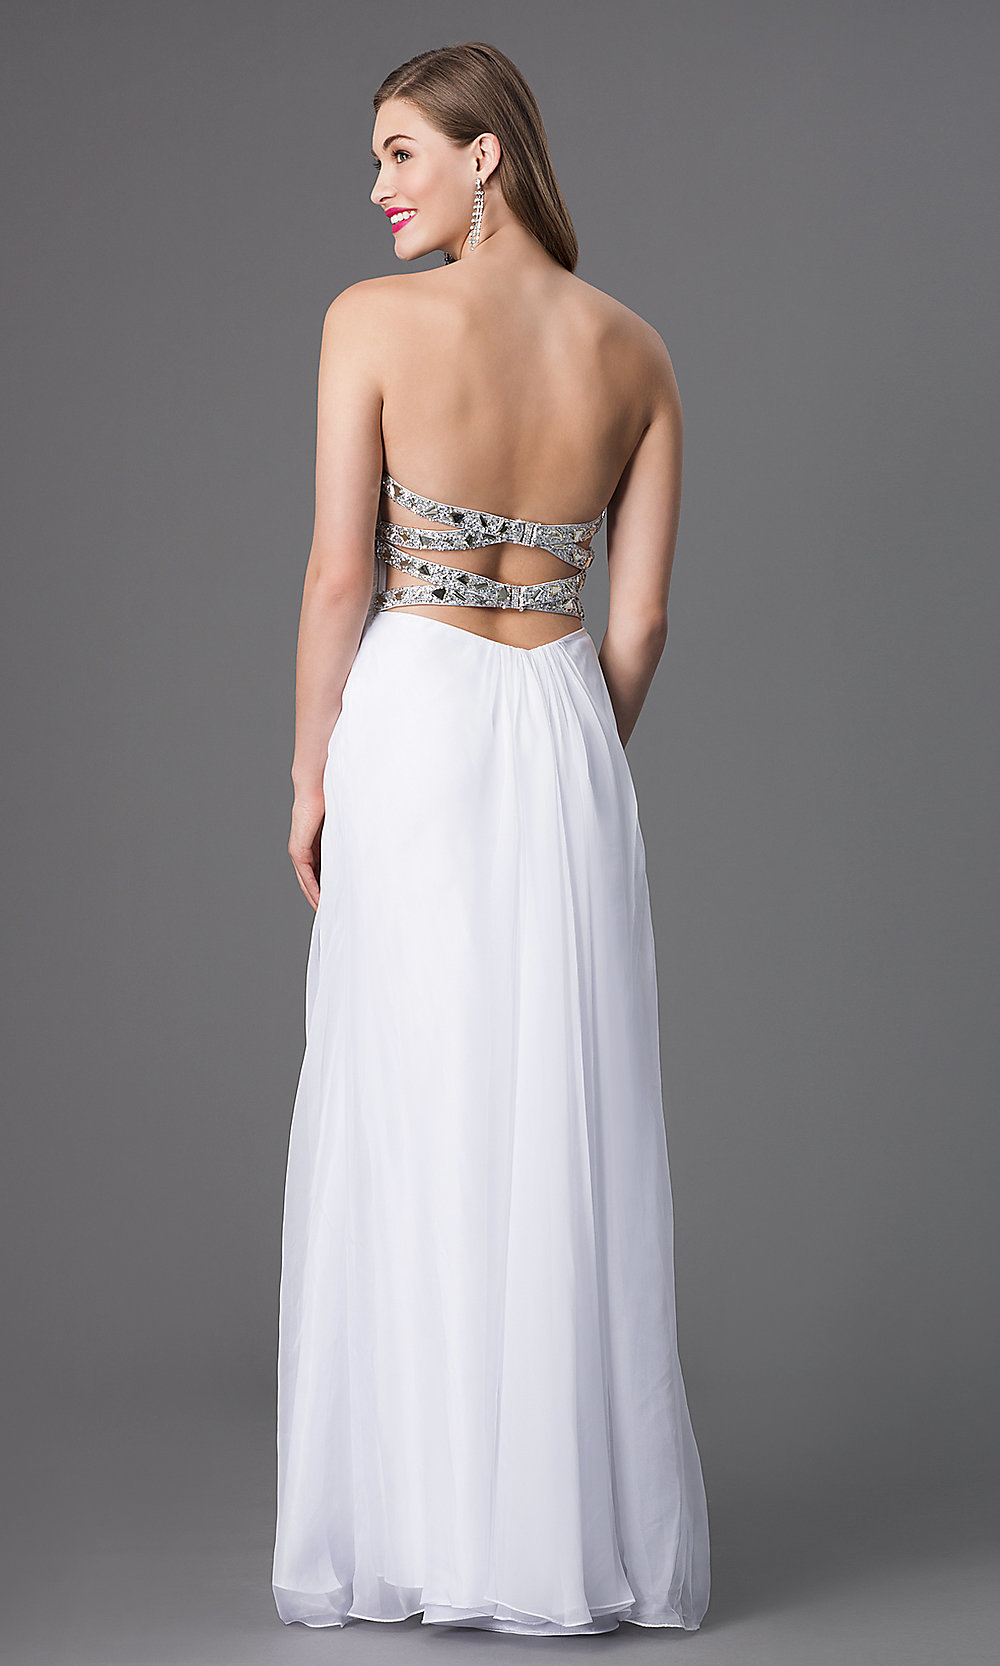 a7f3483e99799 Yükle (1000x1666)Beaded Strapless La Femme Prom Gown -Simply DressesStyle:  LF-17909 Back Image.